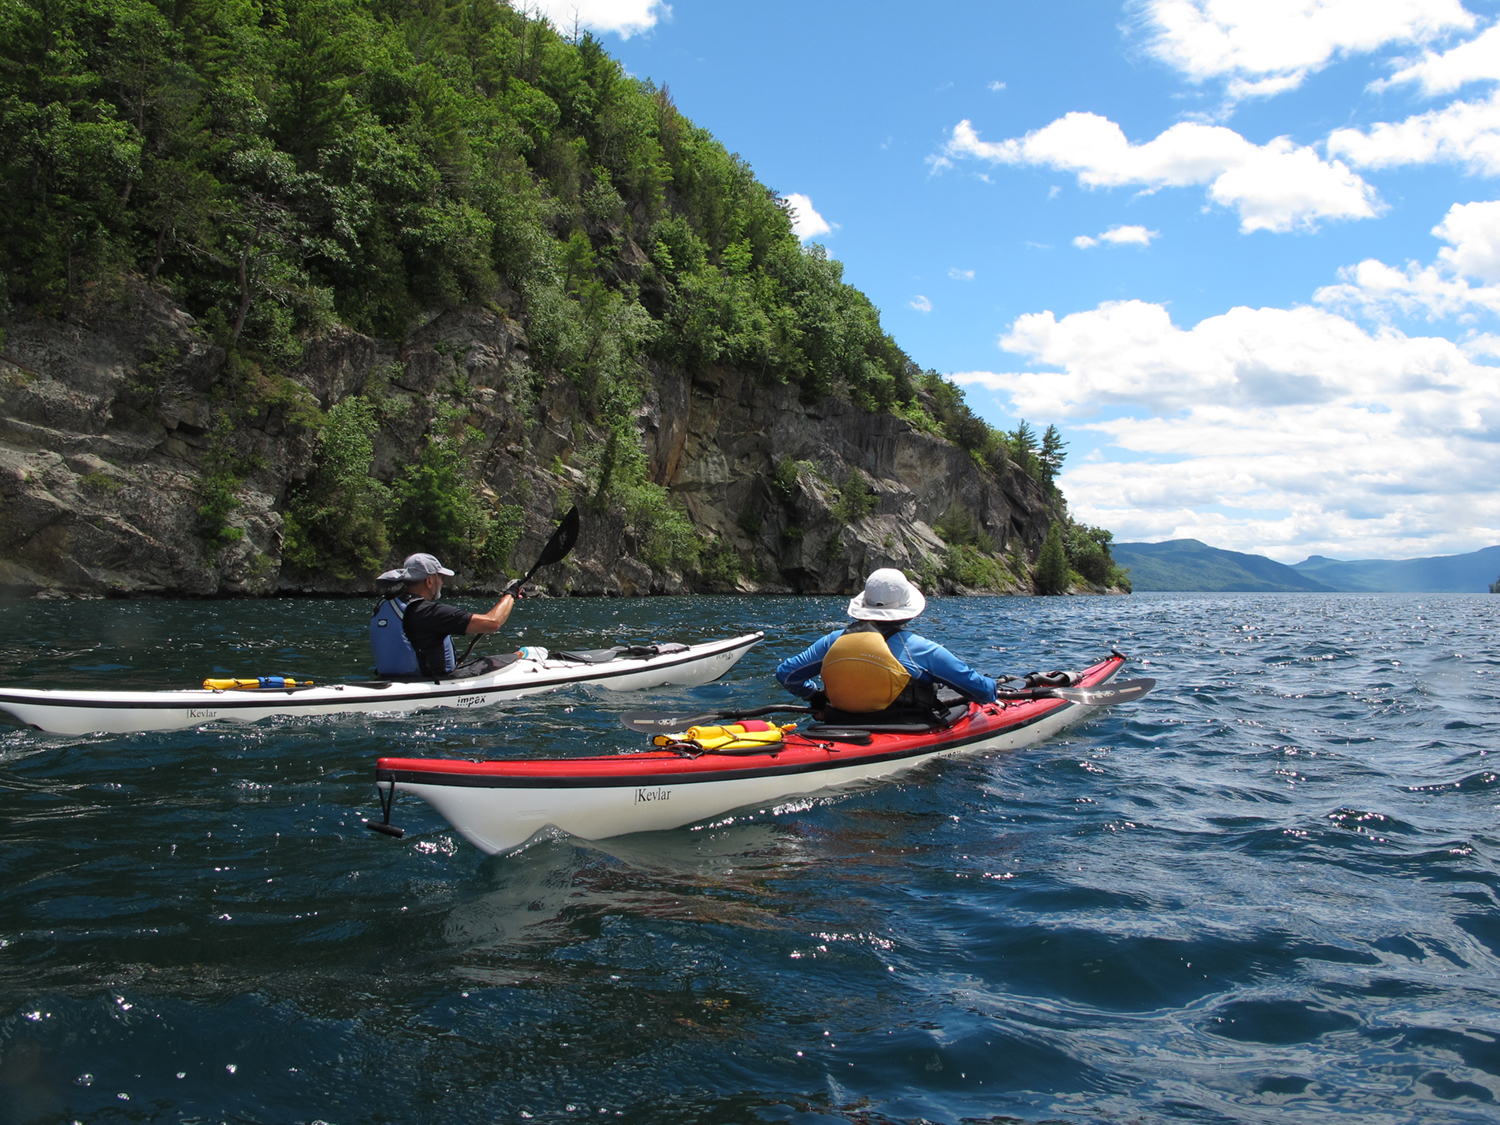 Julie and Michael heading for the point at Anthony's Nose, east shore of the lake.  Alan Mapes